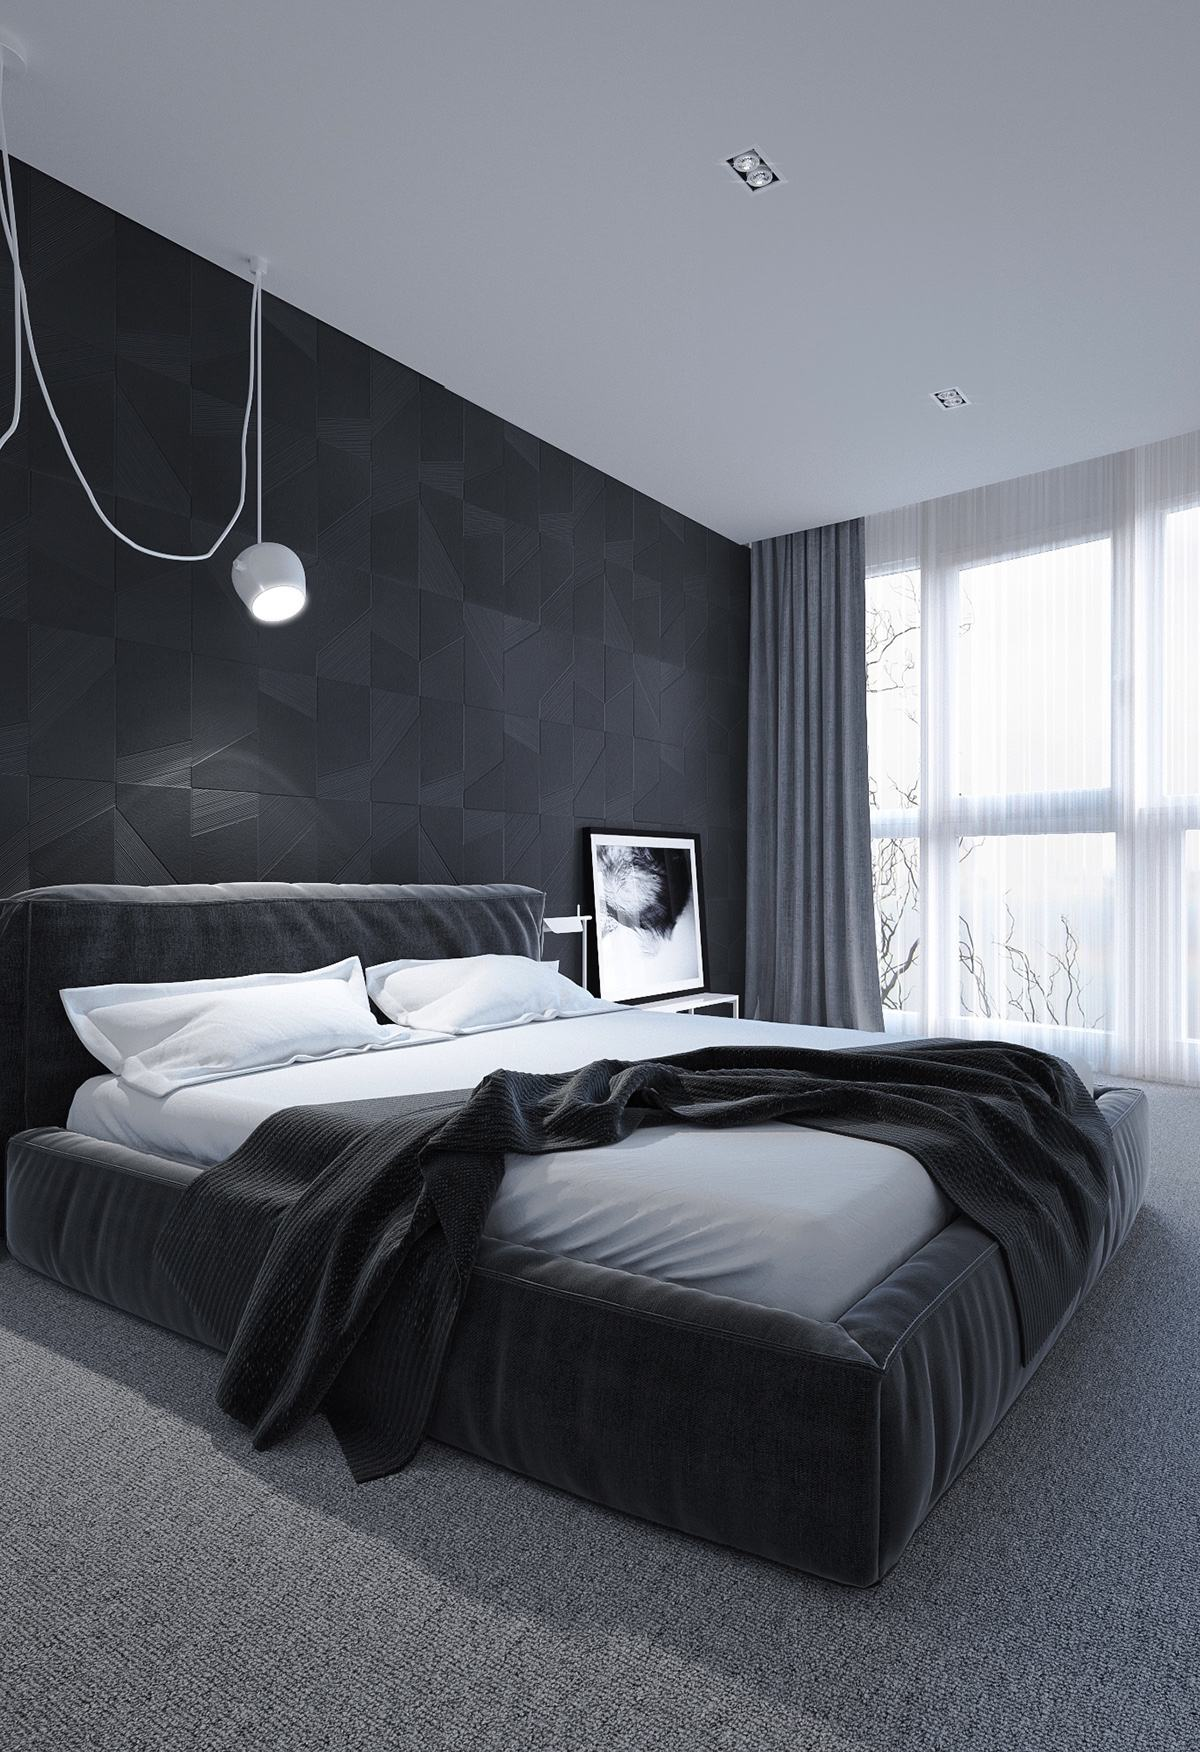 Black And White Bedroom Ideas For Small Rooms 6 Dark Bedrooms Designs To Inspire Sweet Dreams